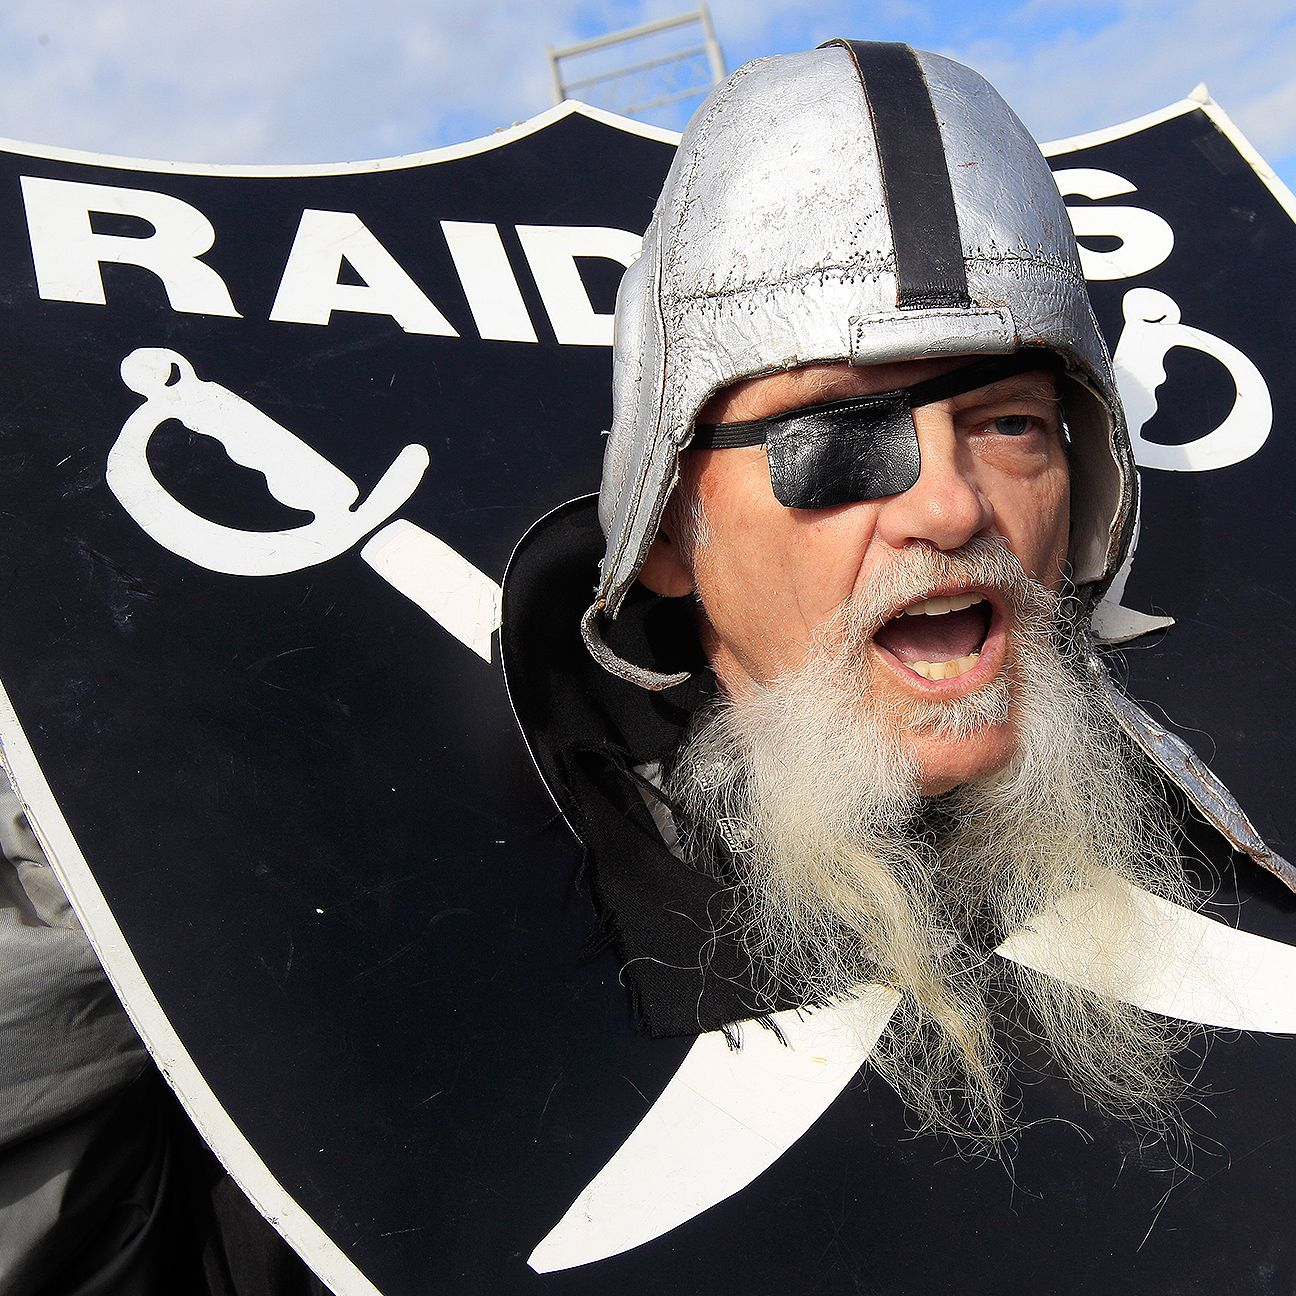 ... addition paying off for Oakland Raiders - Oakland Raiders Blog - ESPN